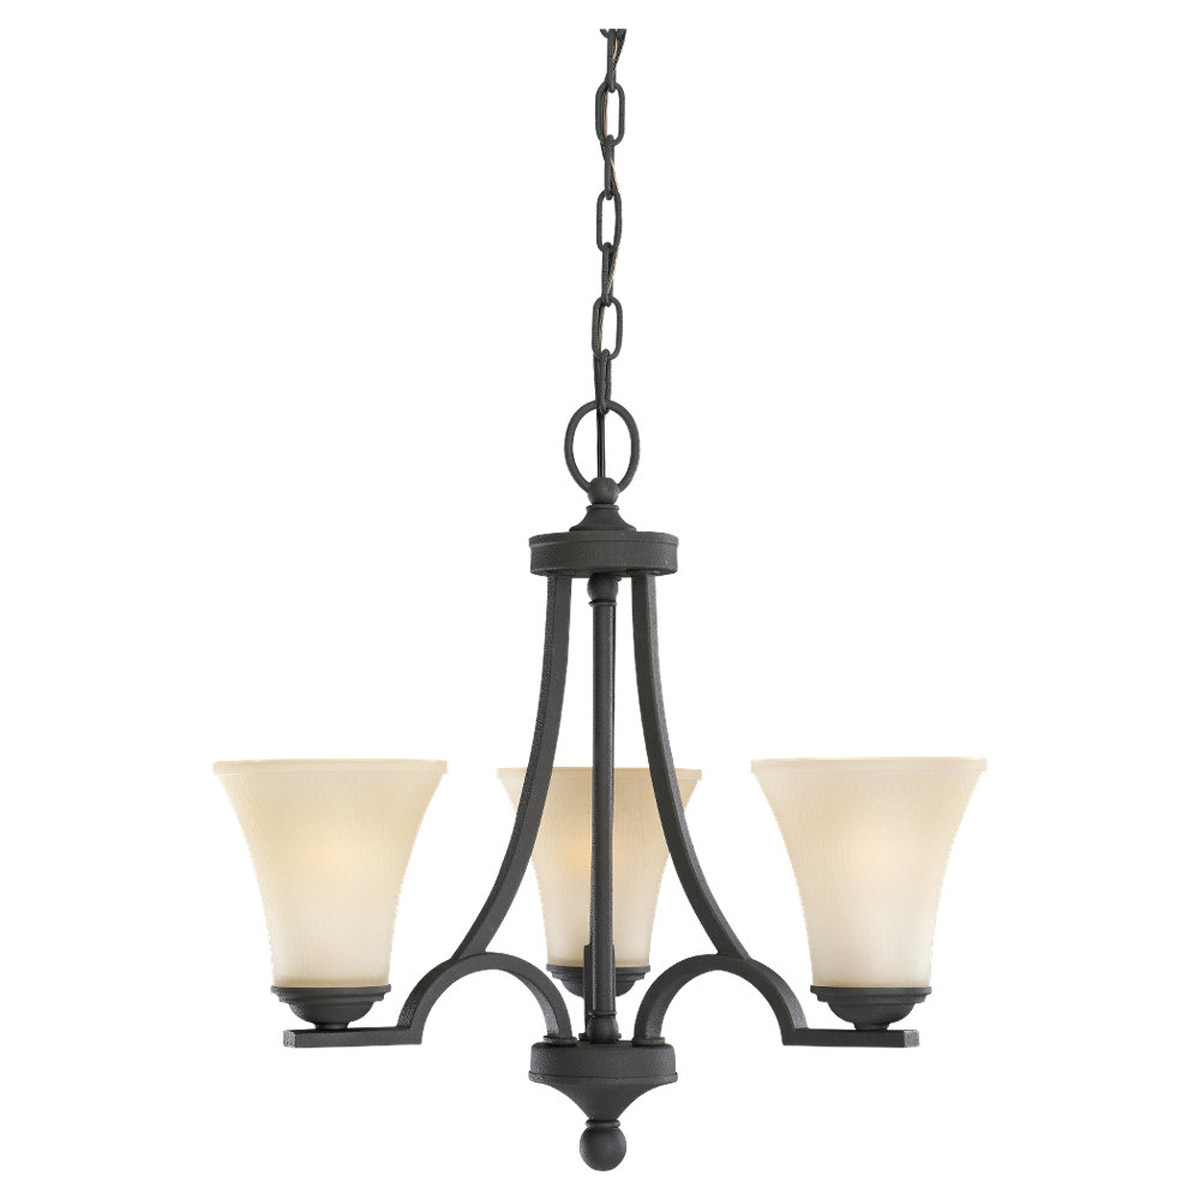 Sea Gull Lighting Somerton 3 Light Chandelier in Blacksmith 31375-839 photo